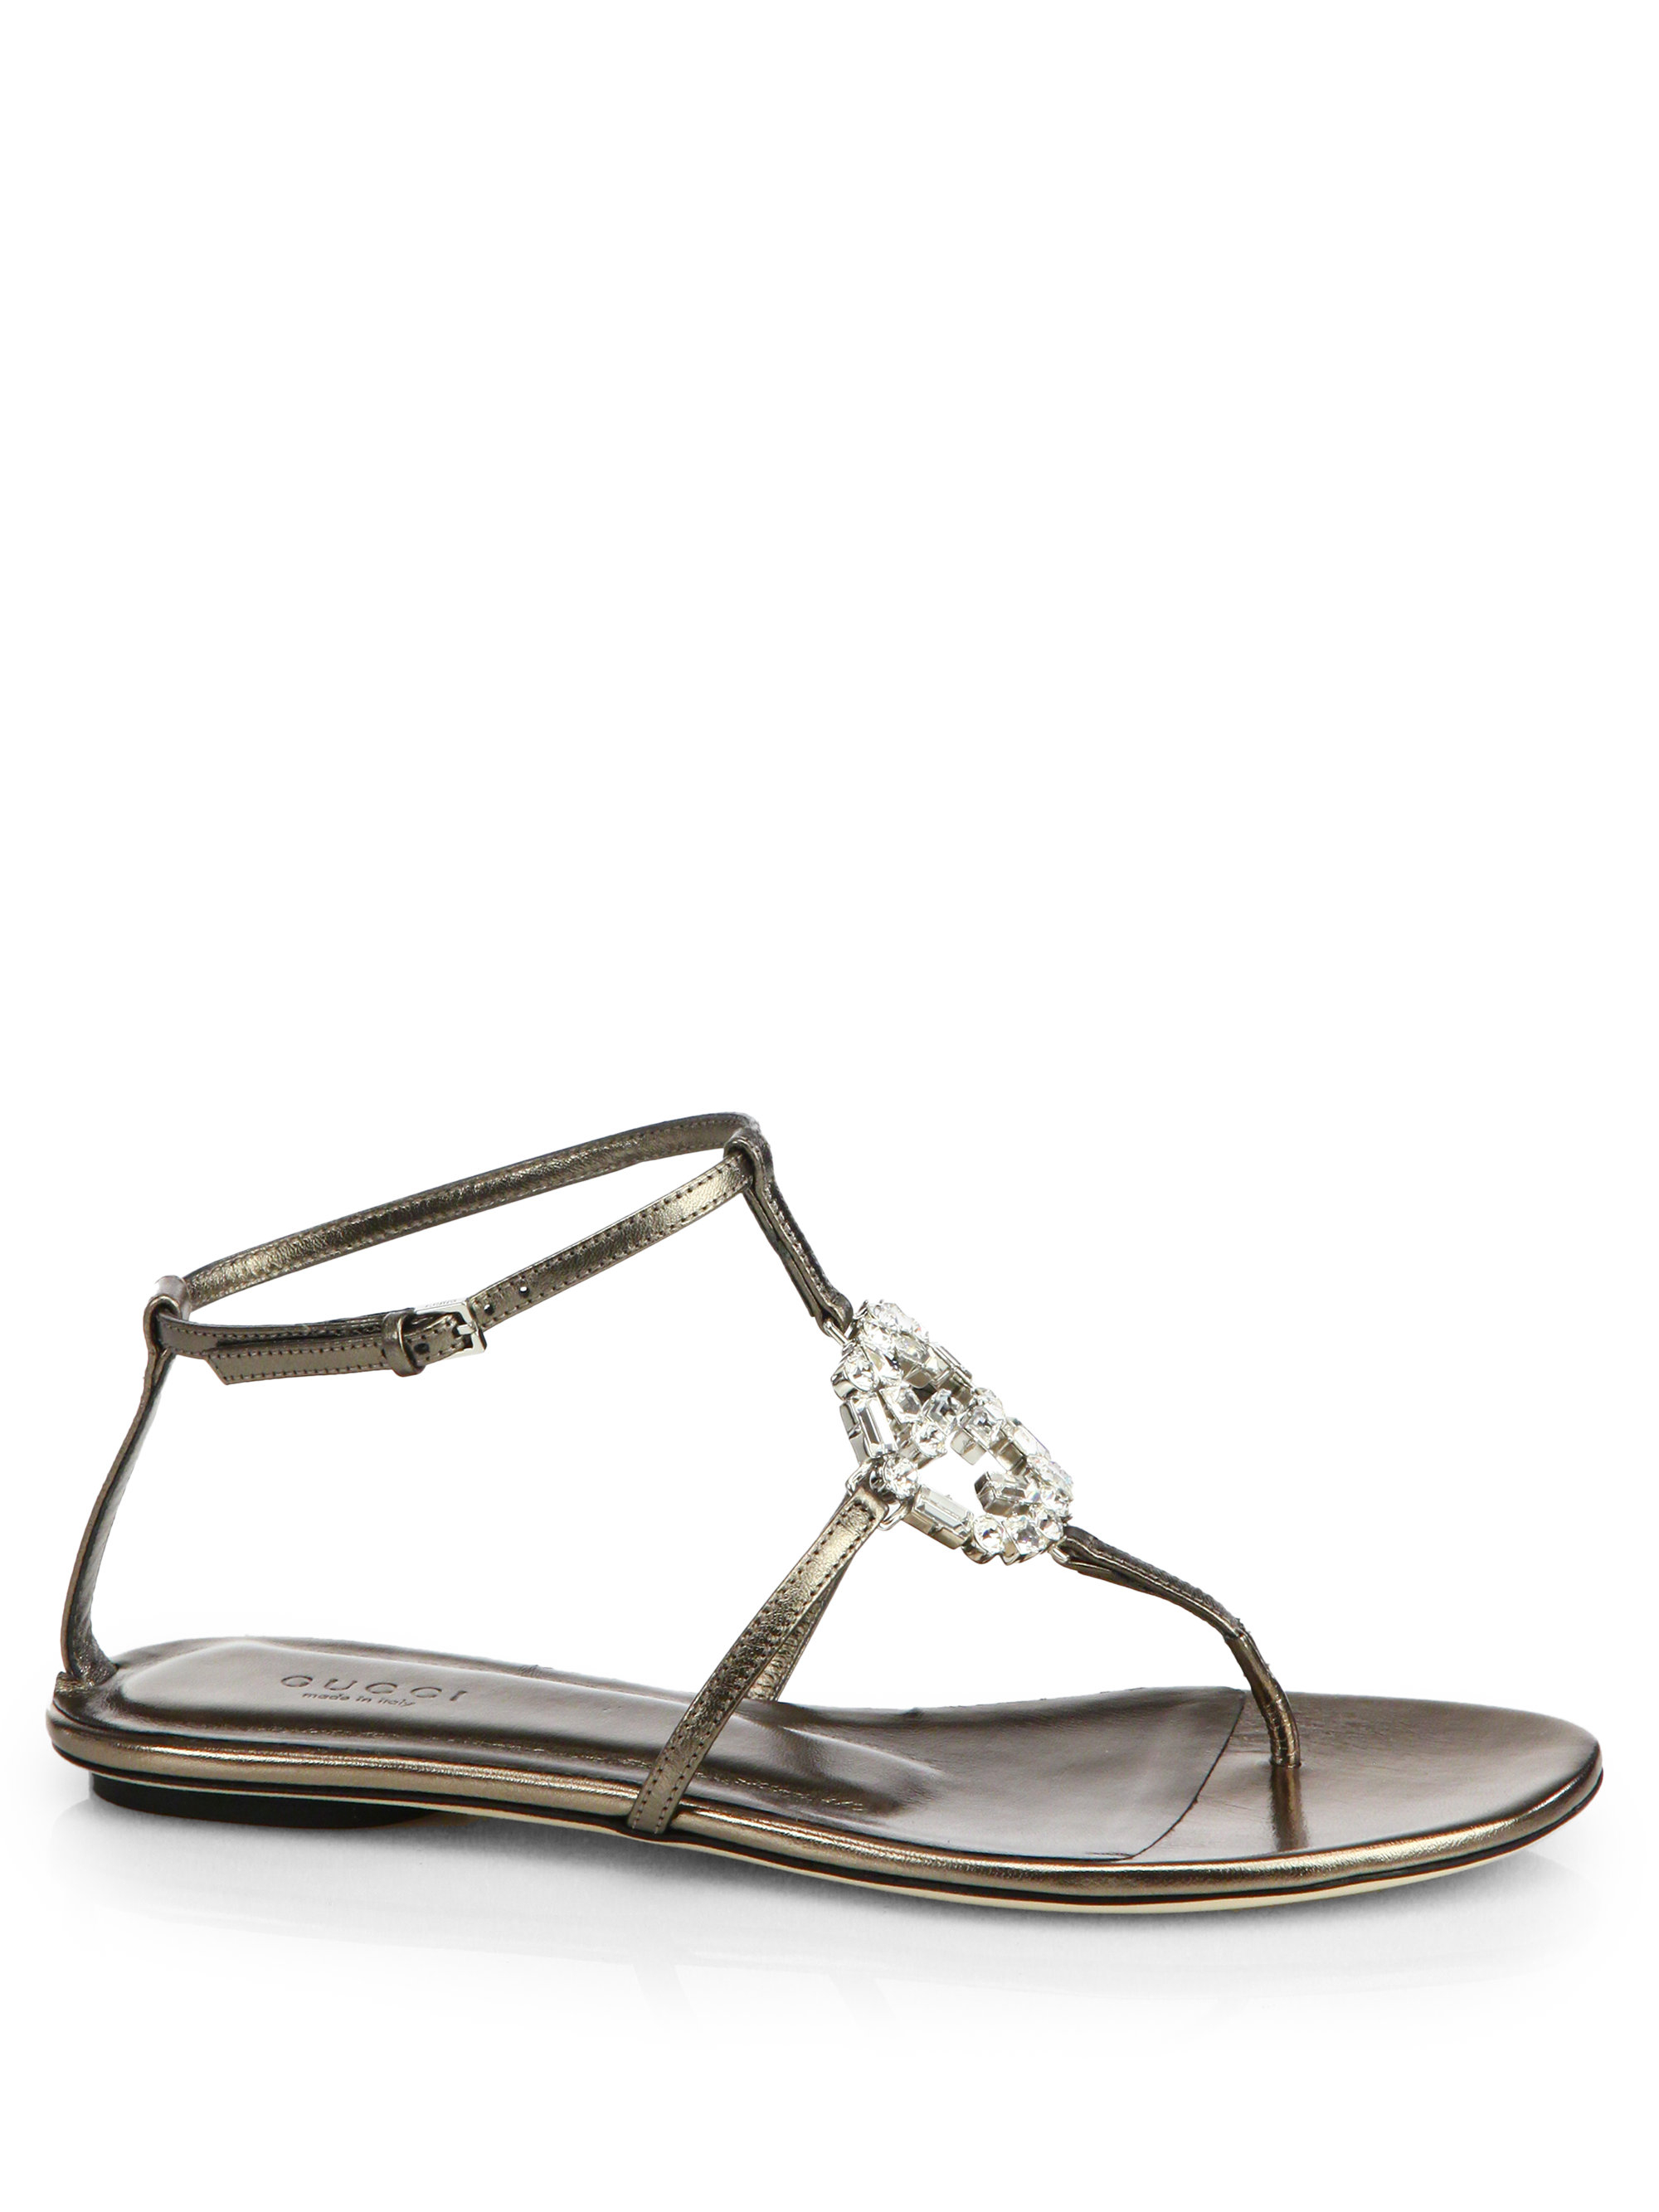 Gucci GG Crystal Leather Sandals in Metallic